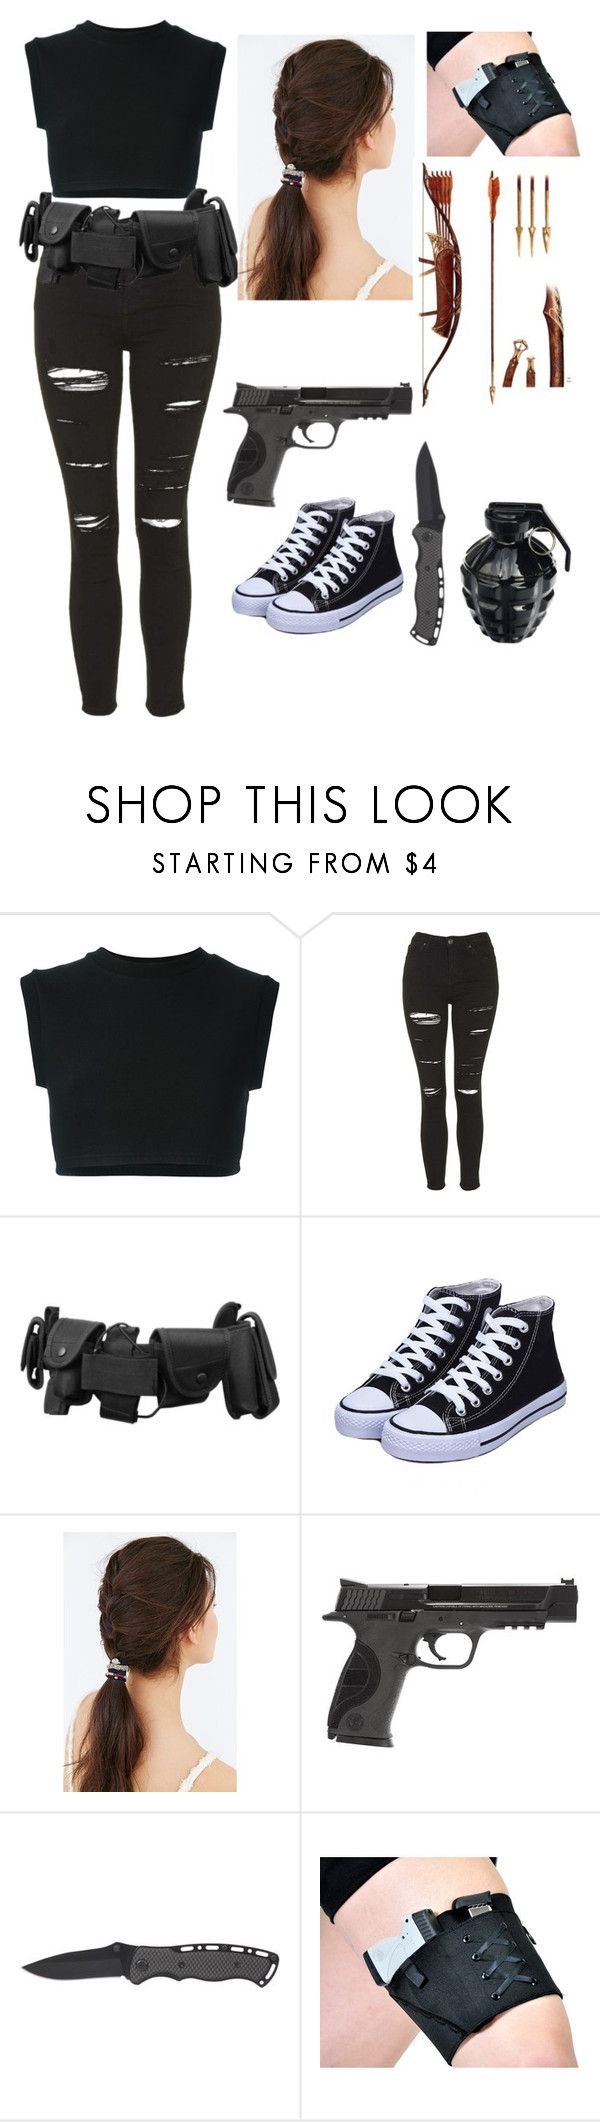 """""""undercover agent"""" by unicornsparklepoop ❤ liked on Polyvore featuring adidas Originals, Topshop, JEM, Smith & Wesson and MollaSpace"""